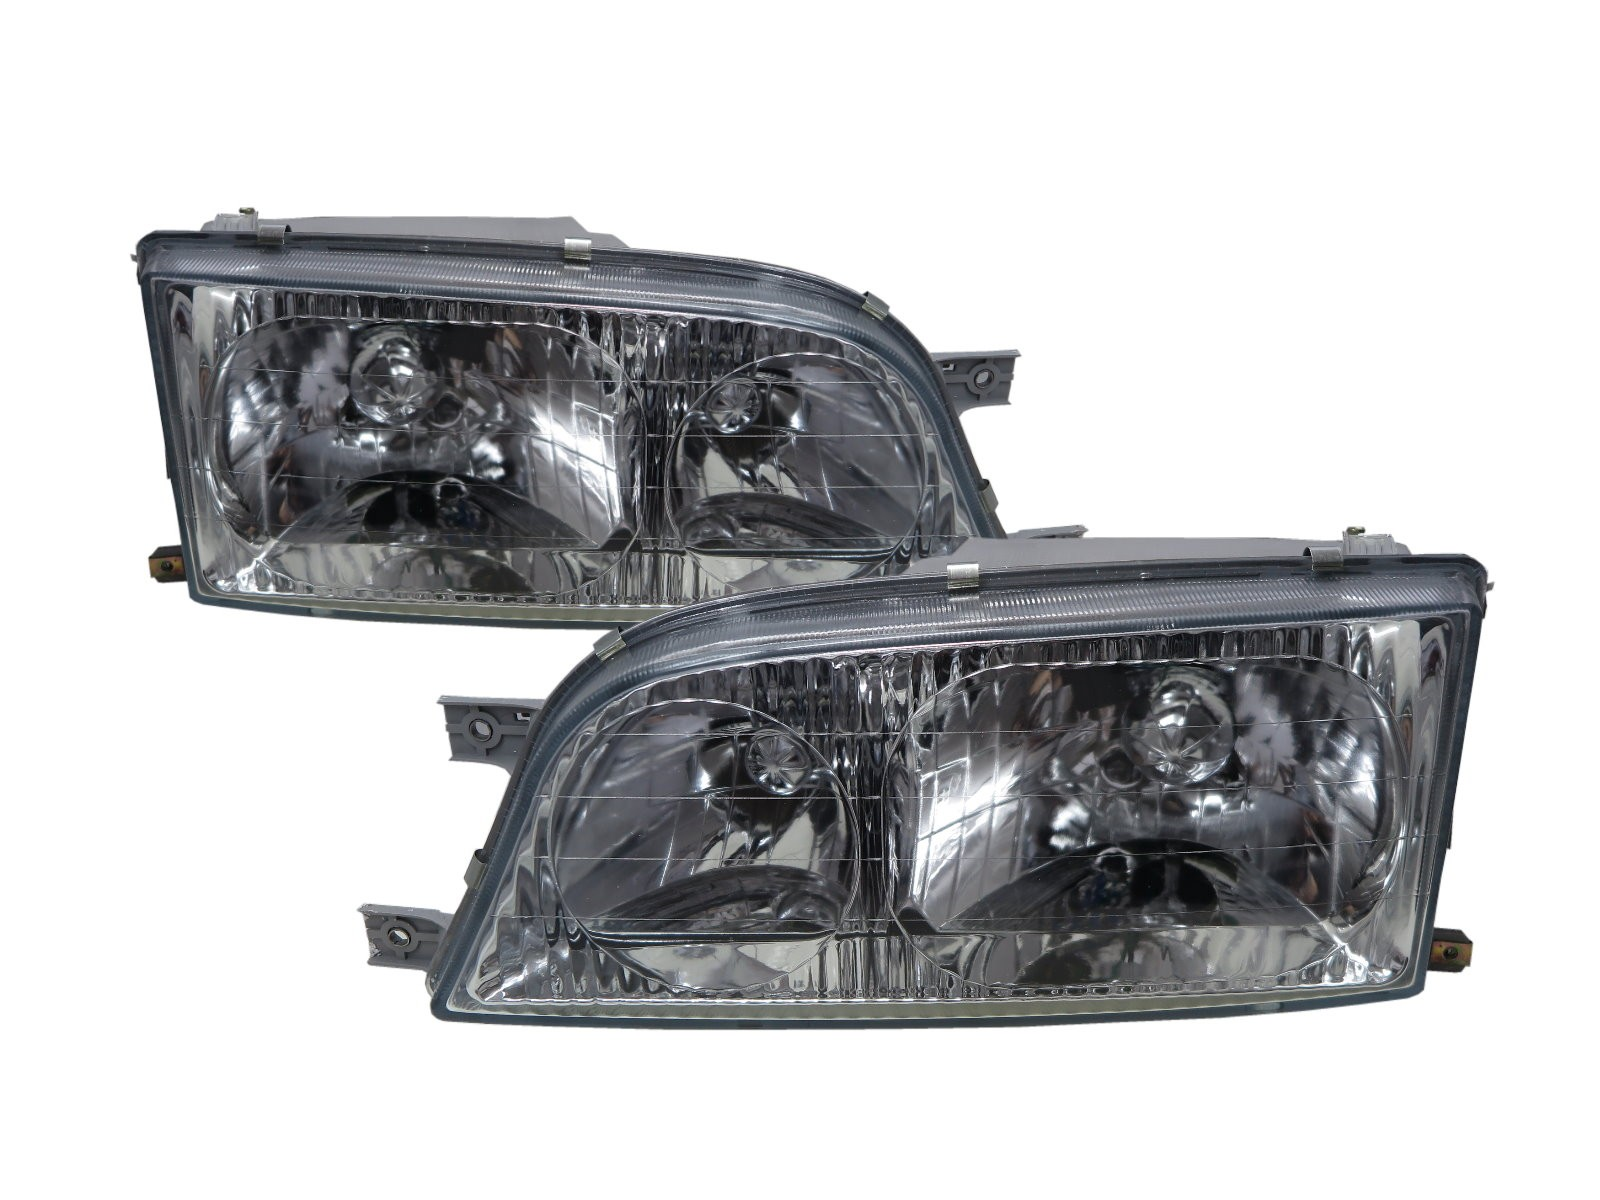 CrazyTheGod Istana 1995-2004 Minibus/VAN 4D Clear Glass Headlight Headlamp Chrome for SsangYong LHD